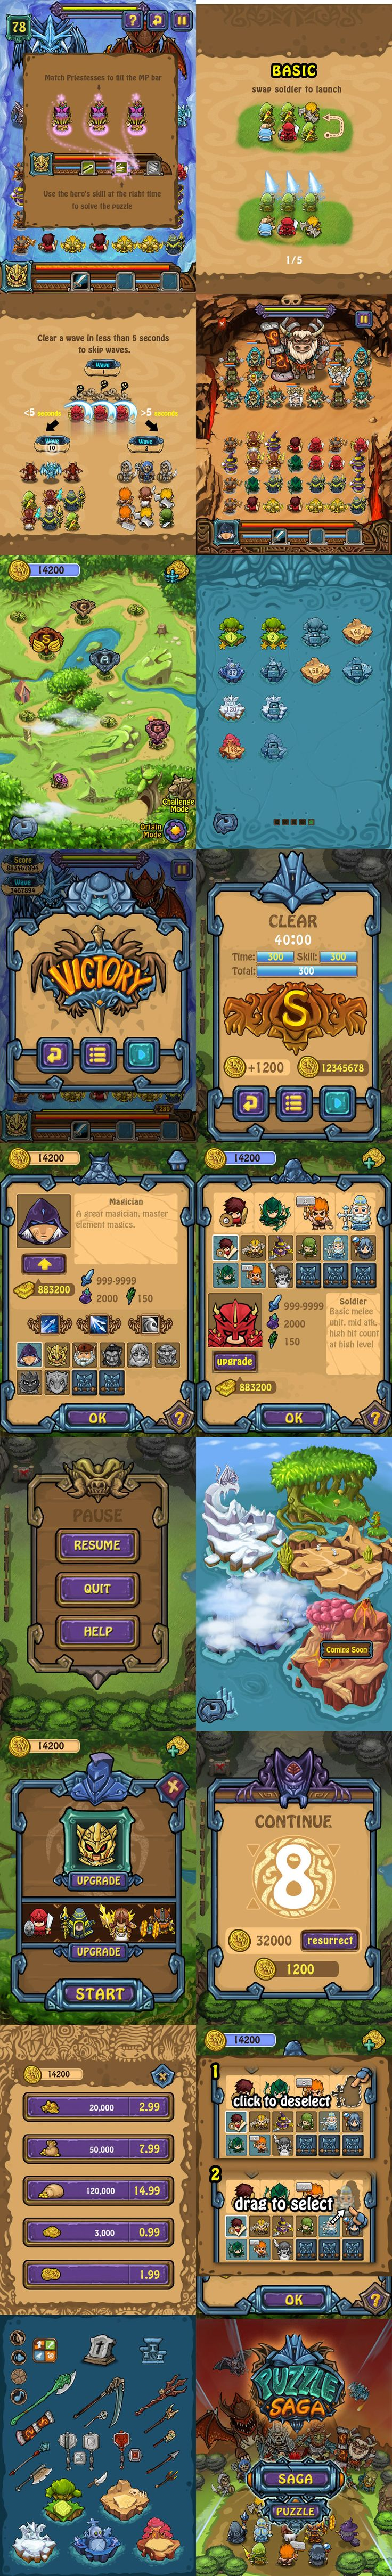 Puzzle Saga game art and ui